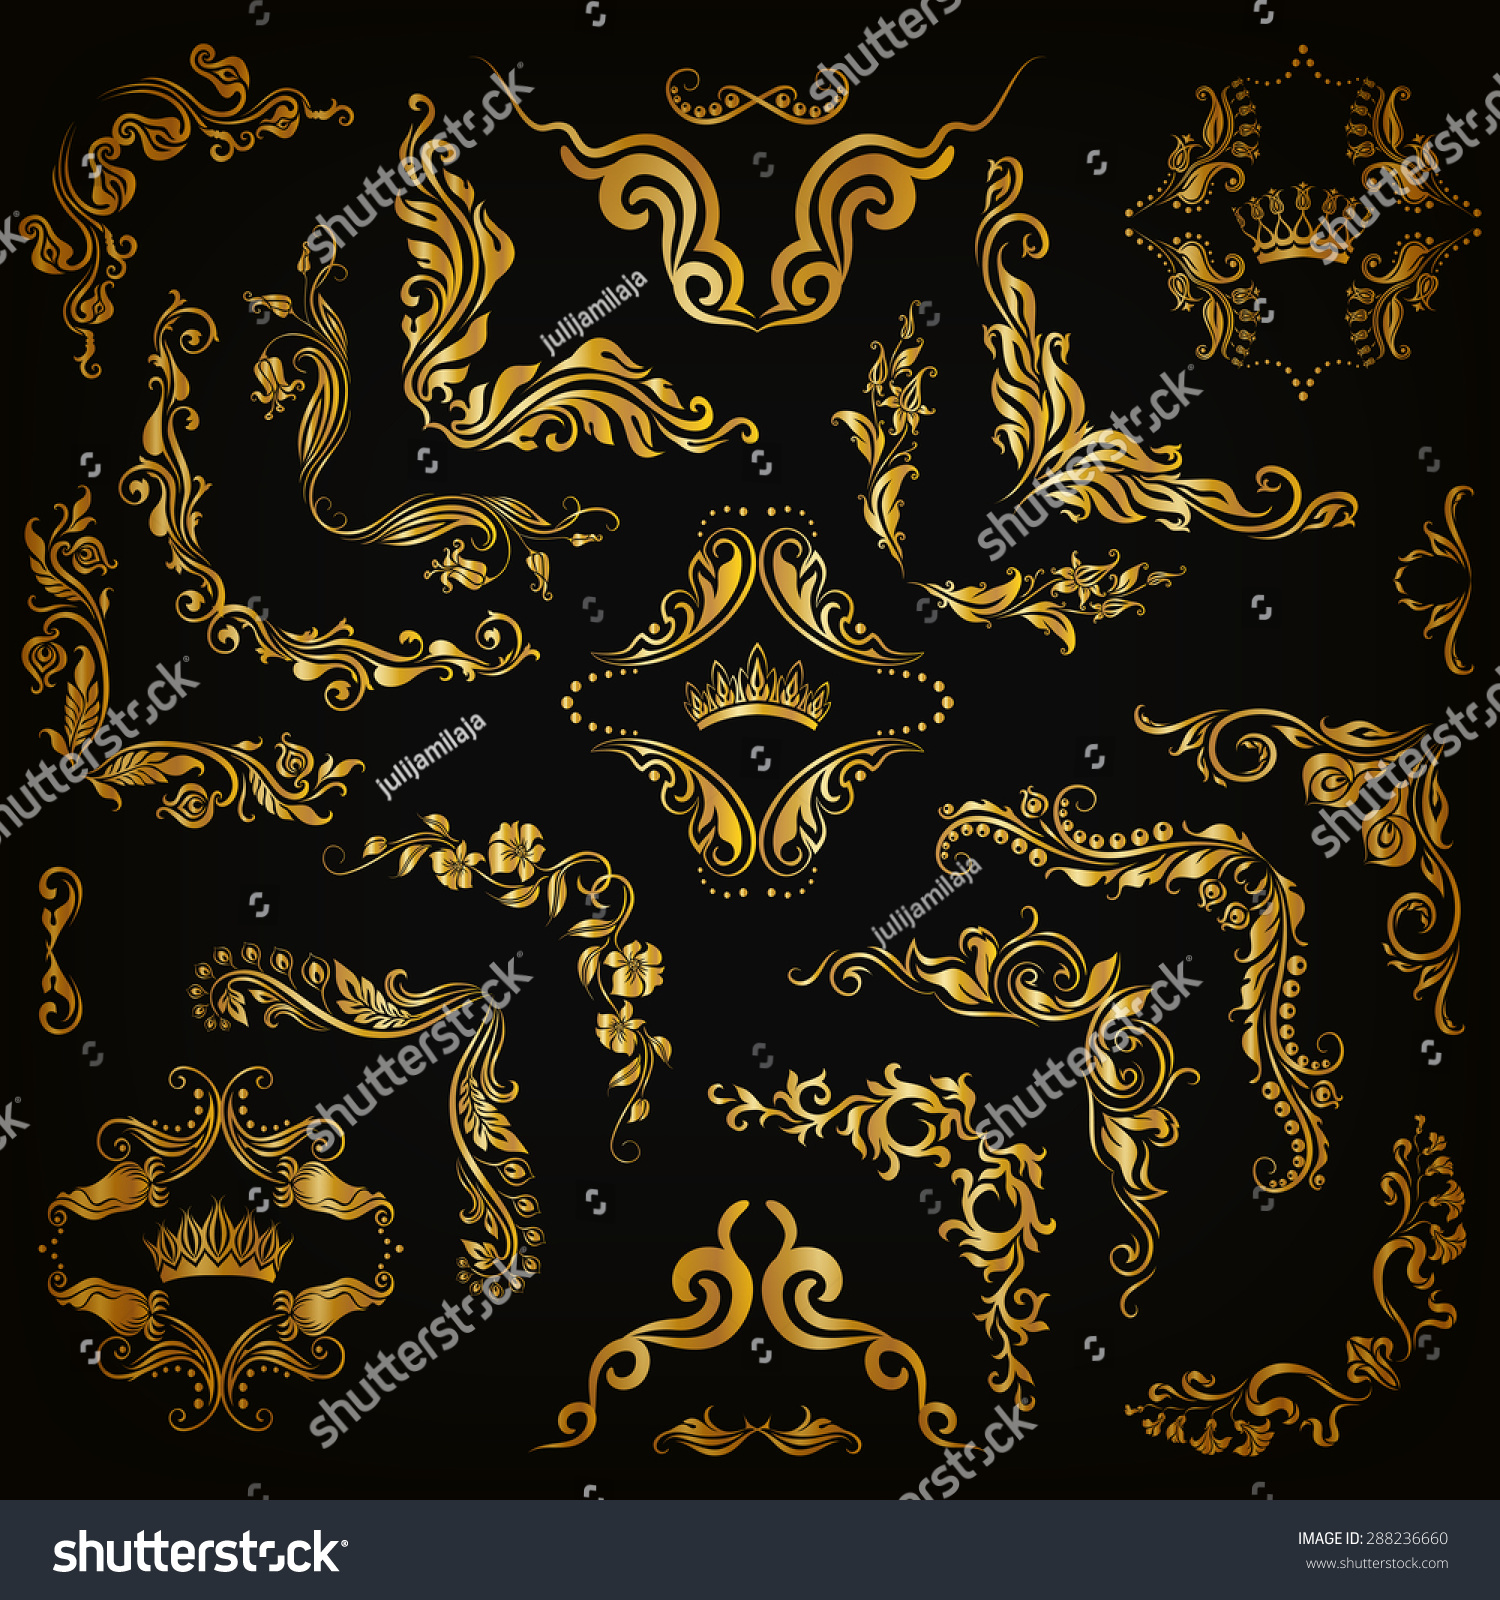 Decorative Black Flower Border Stock Image: Vector Set Gold Decorative Handdrawn Floral Stock Vector